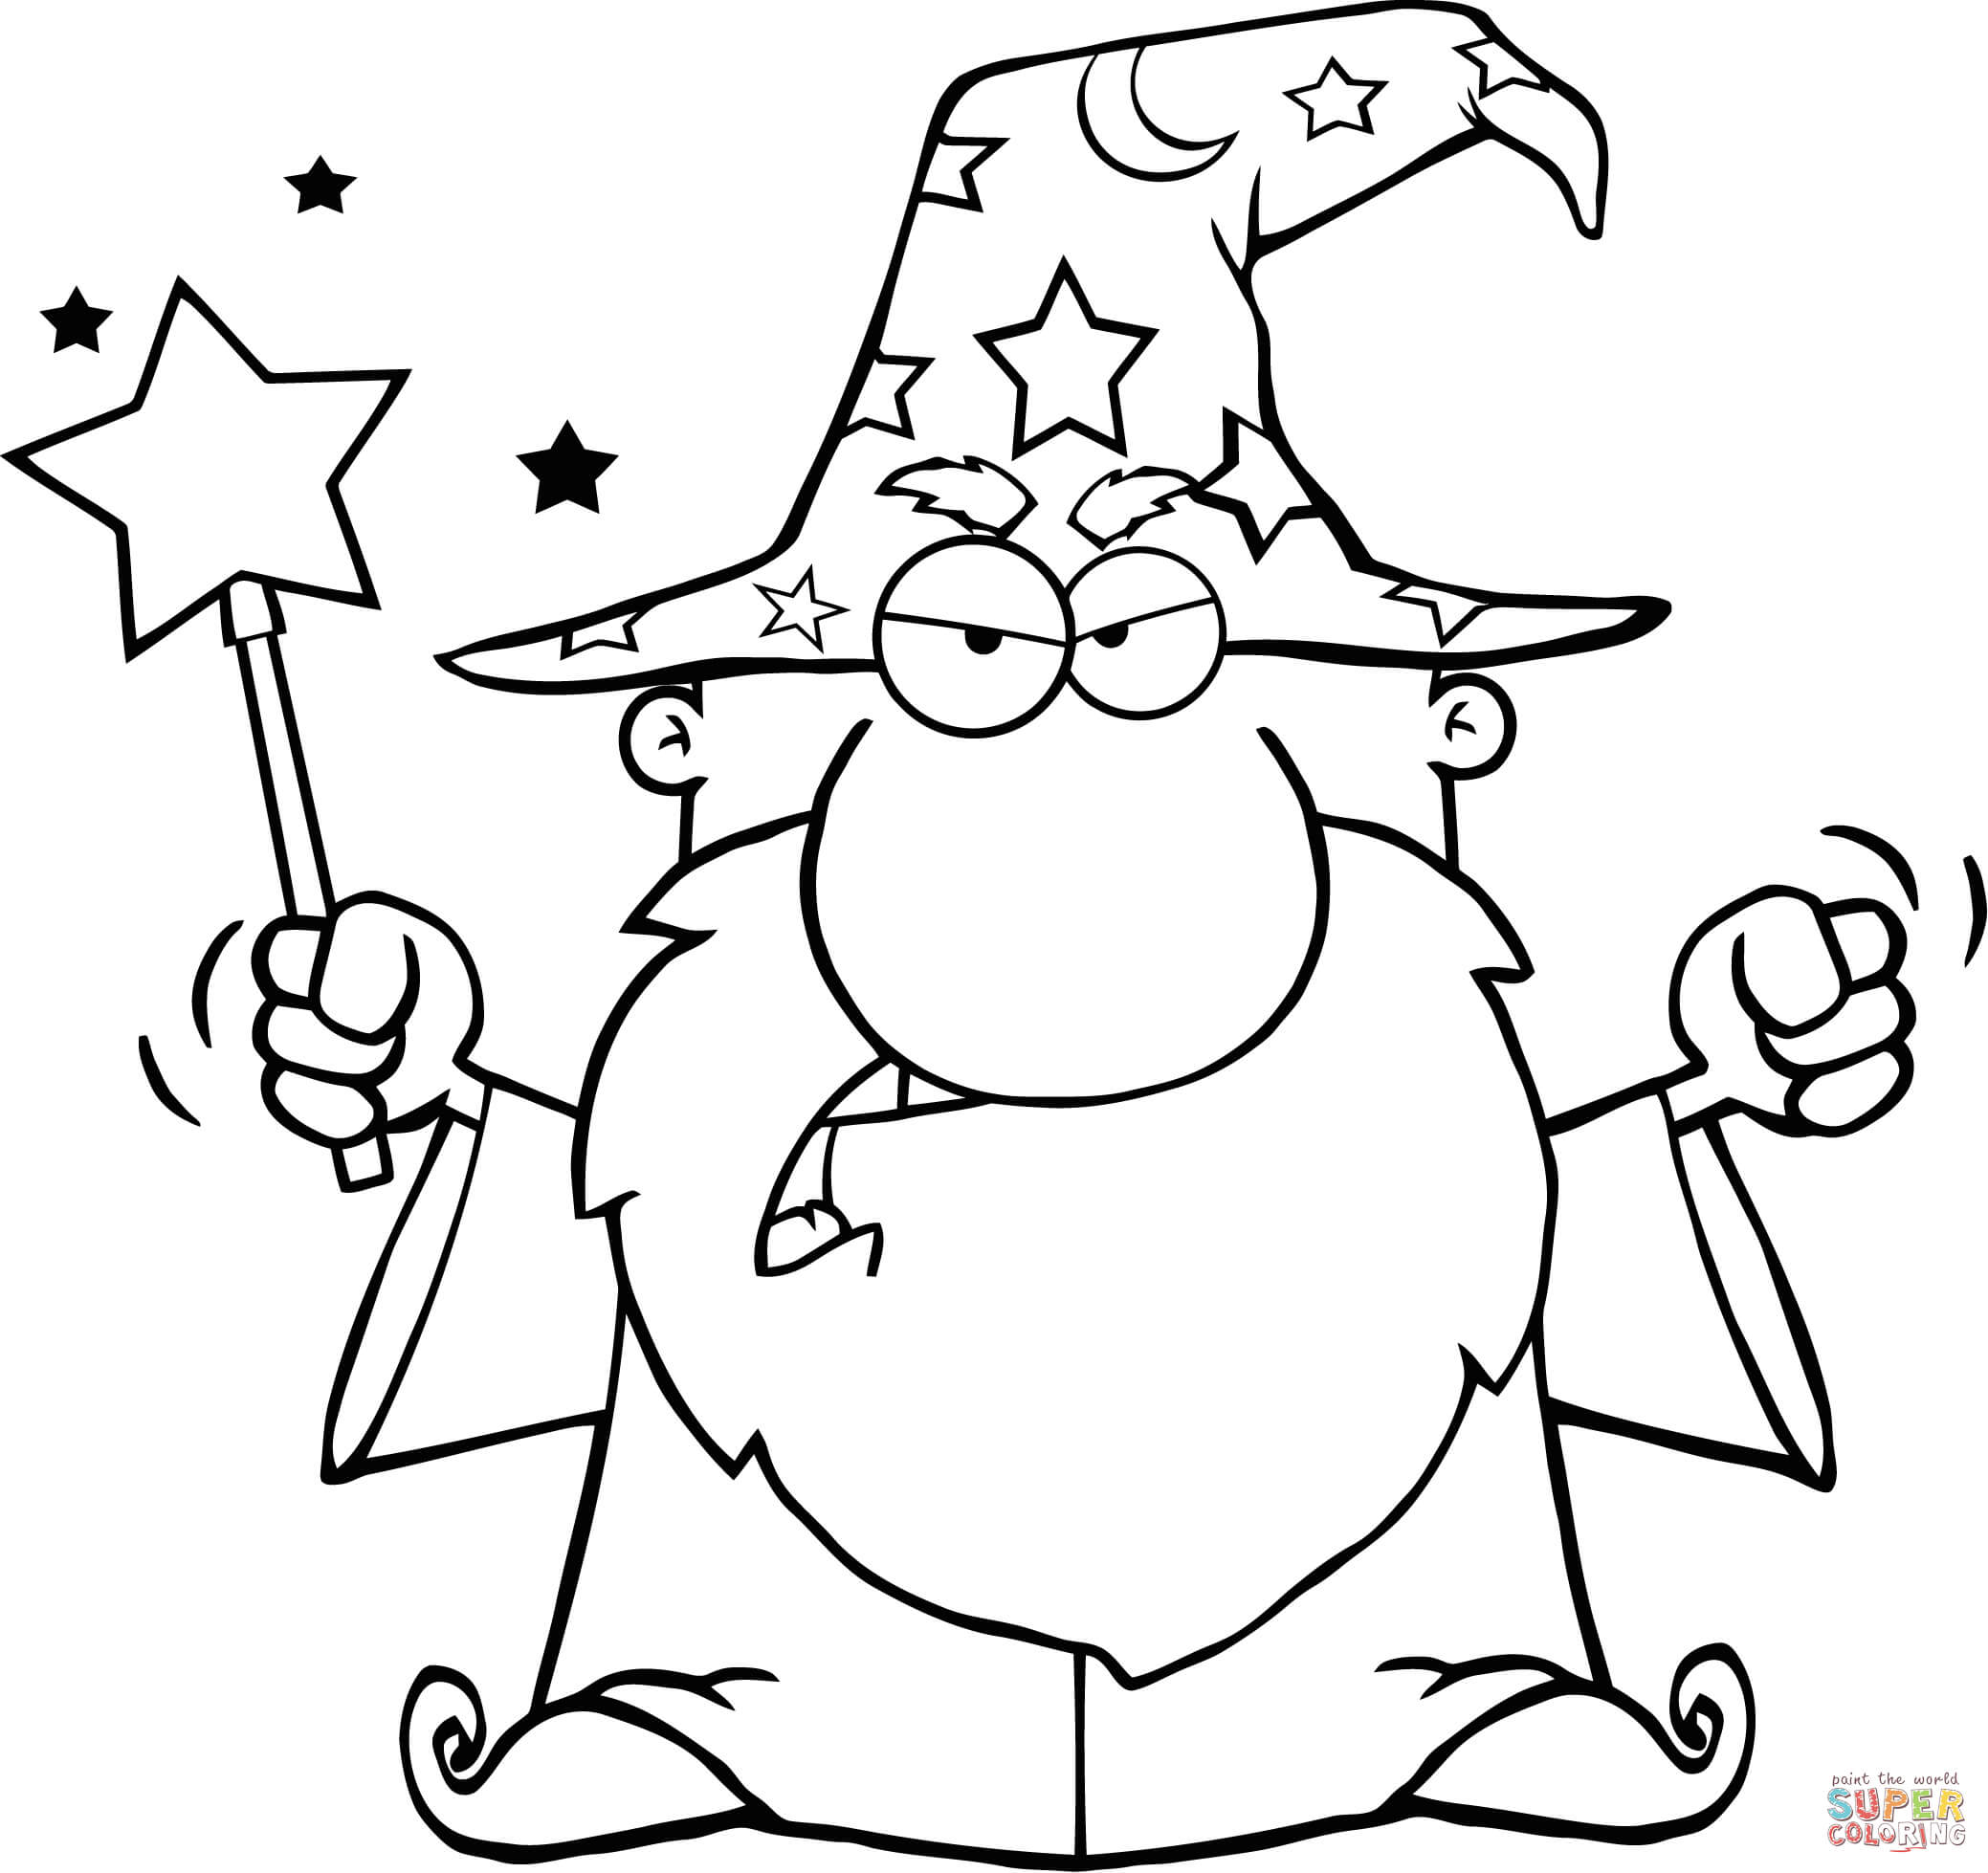 wizard coloring pages friendly wizard with open arms coloring page free wizard pages coloring